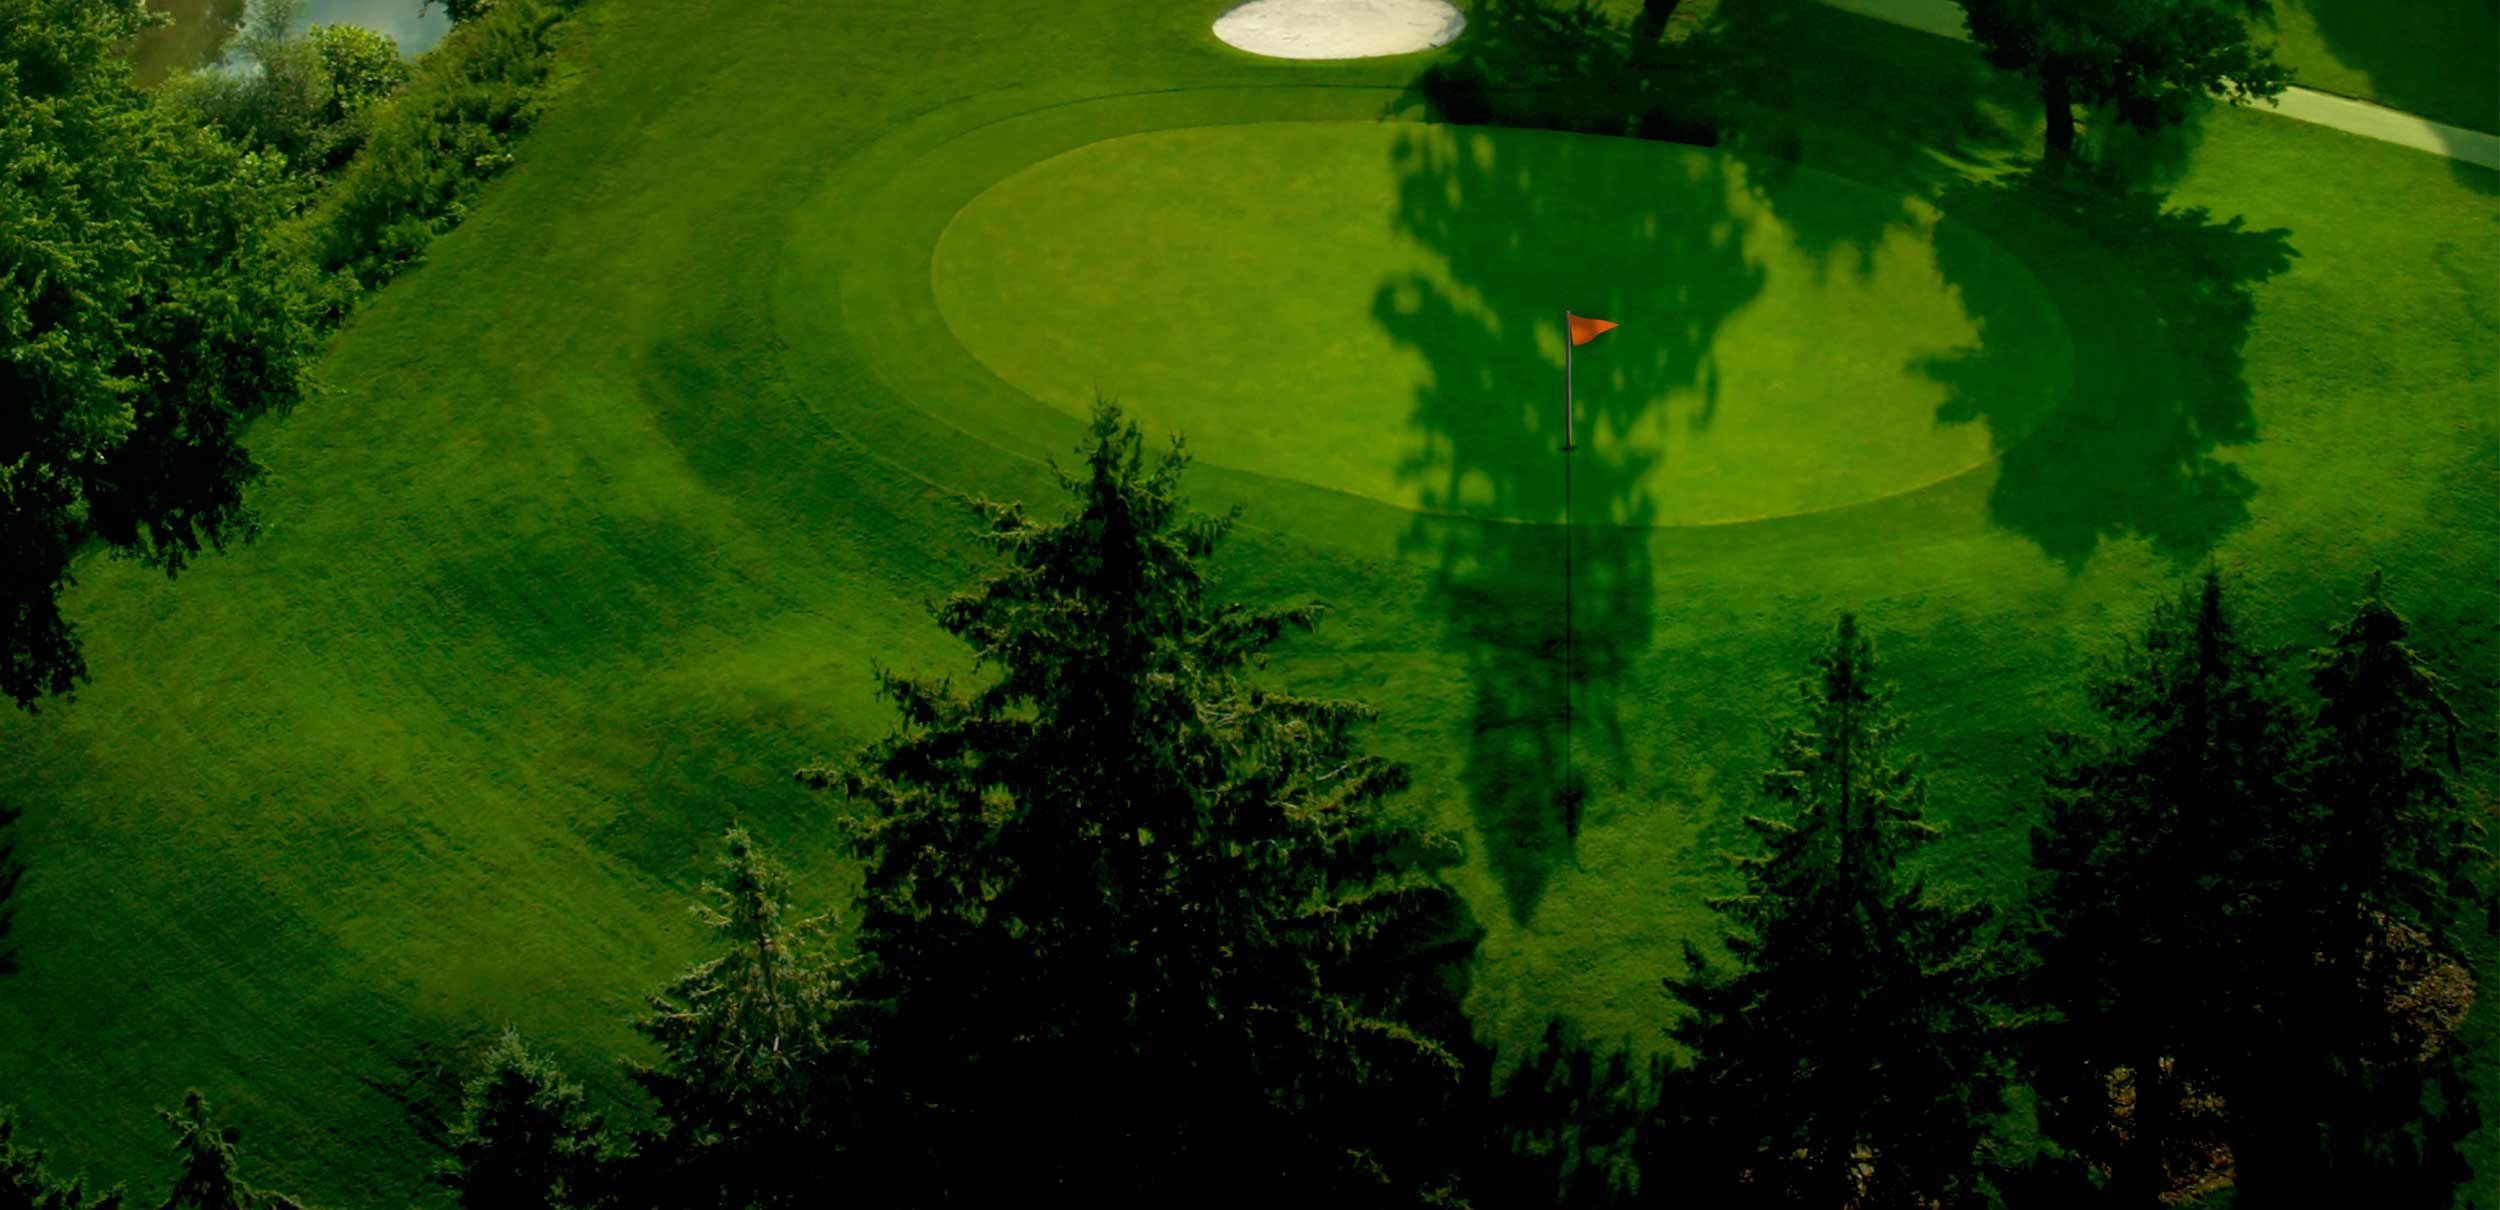 Columbia hills country club cover picture